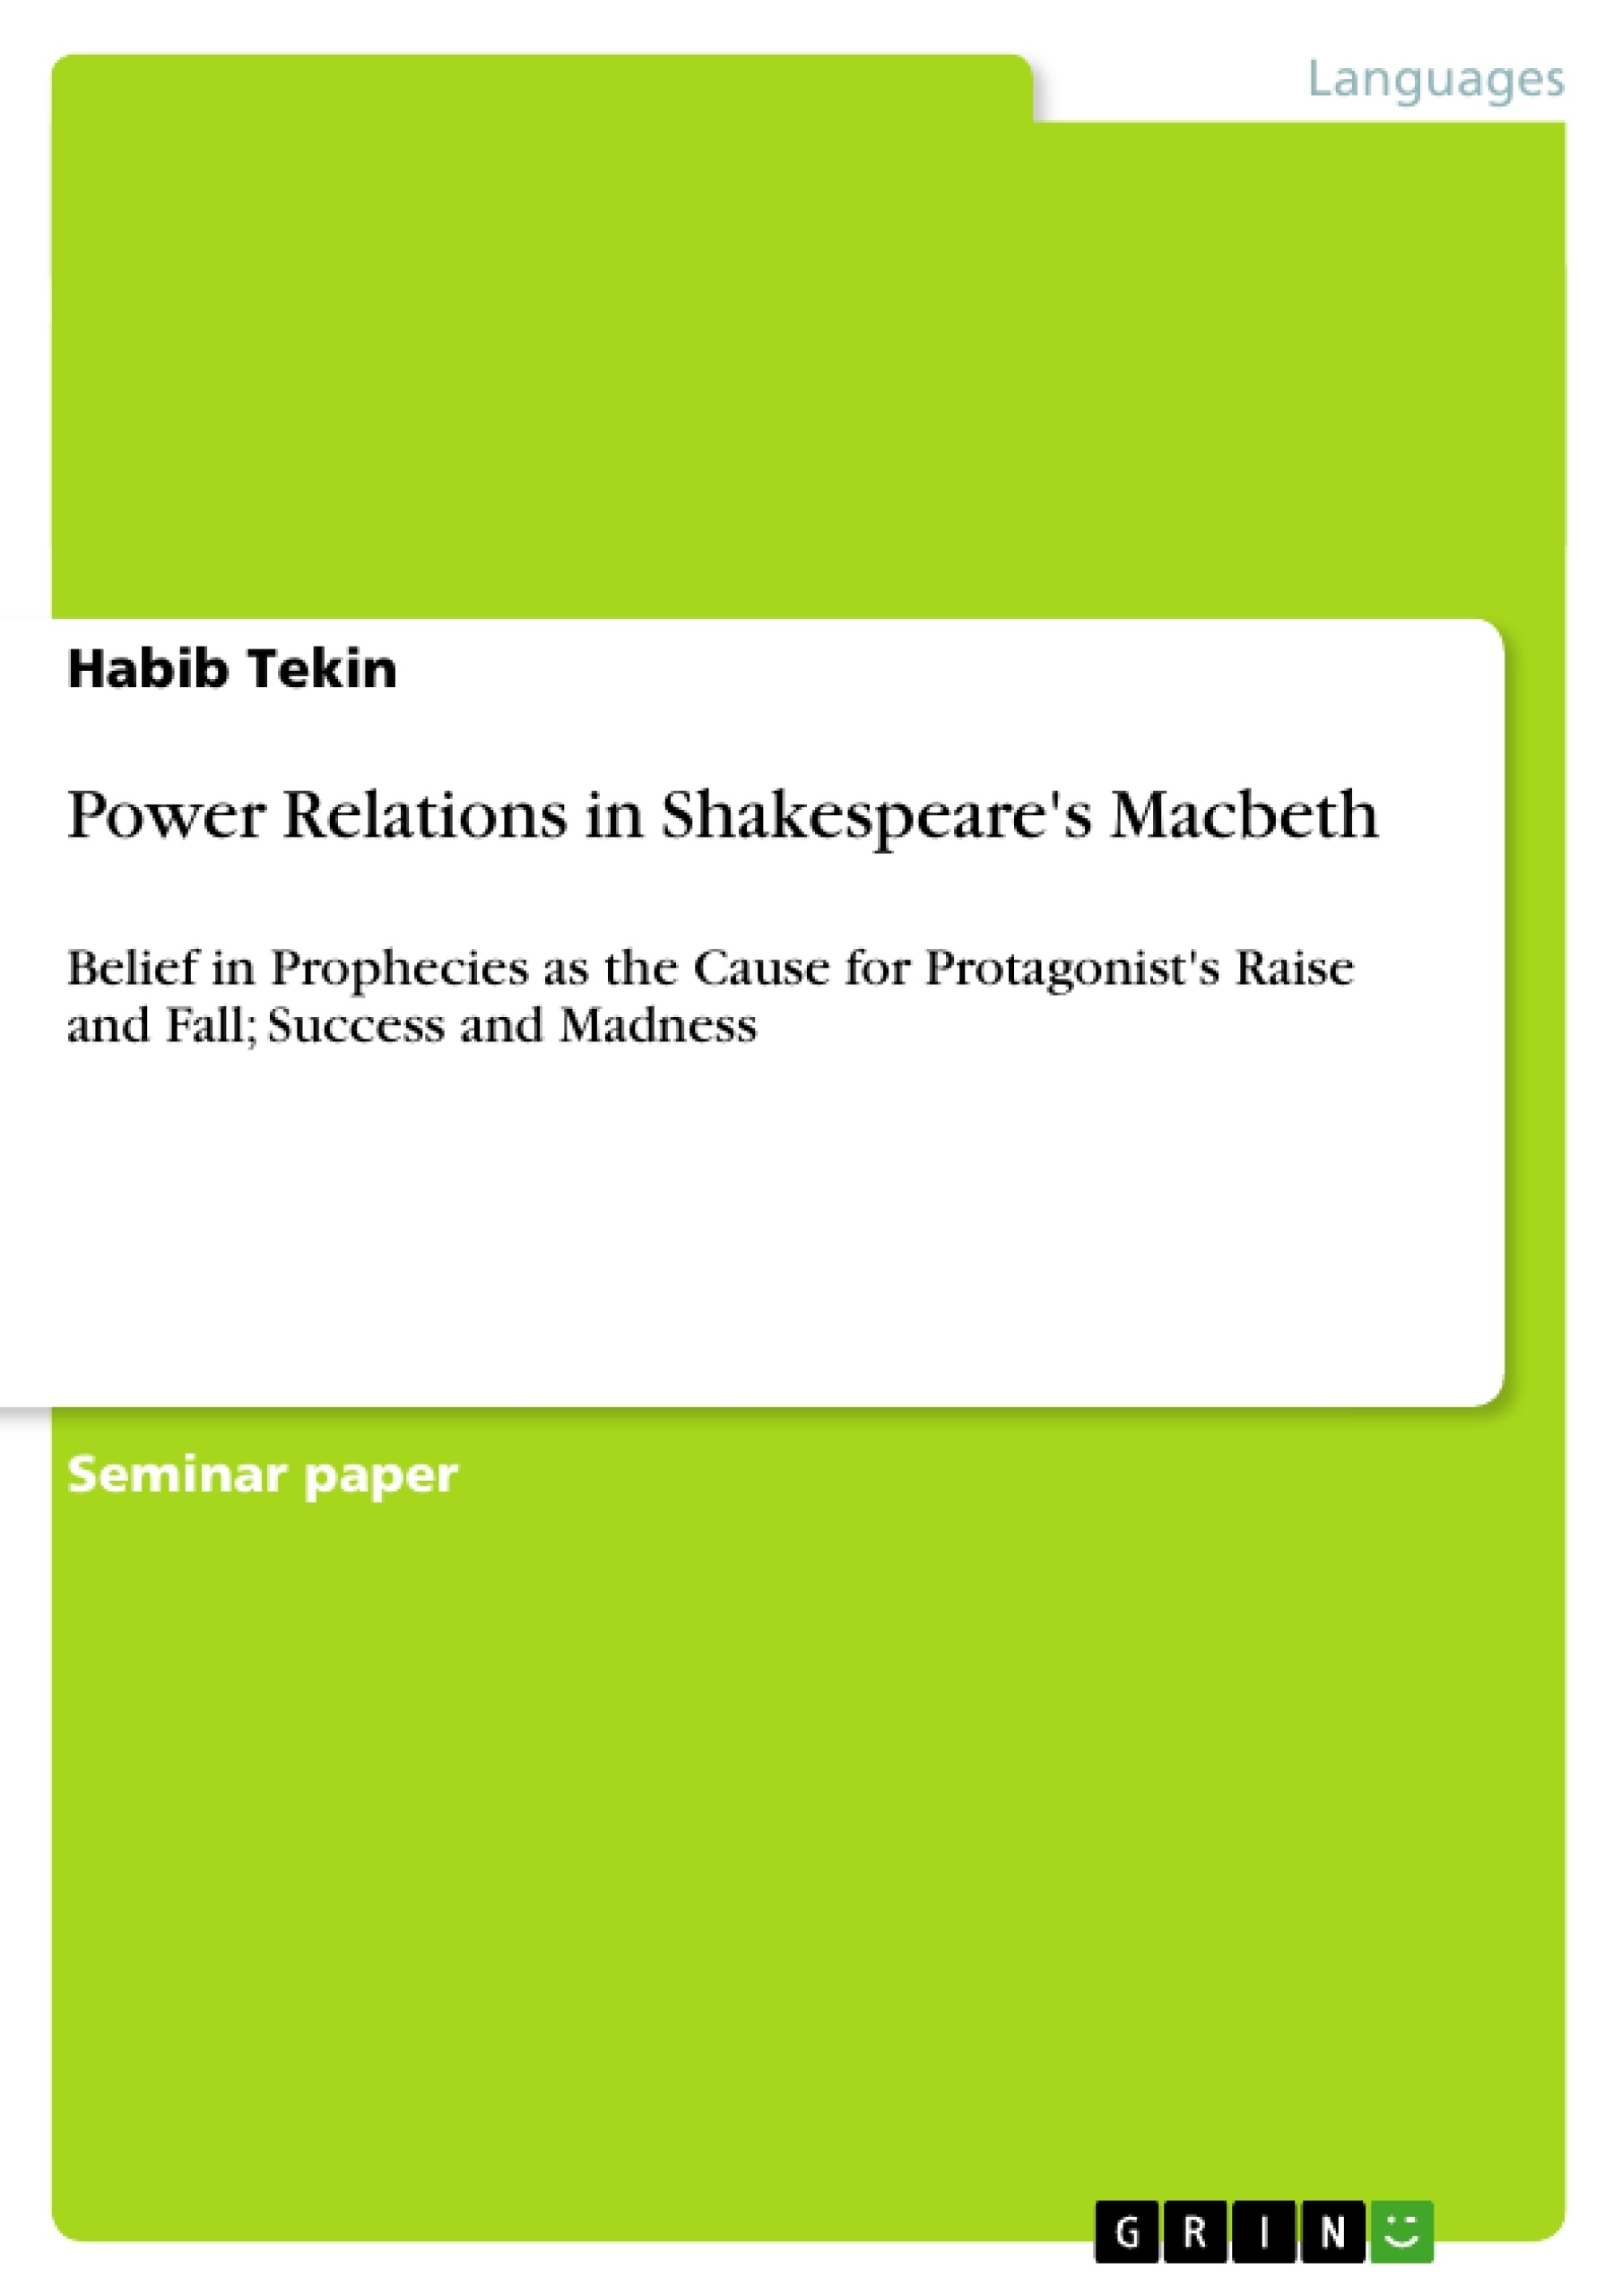 power relations in shakespeare s macbeth publish your master s upload your own papers earn money and win an iphone 7